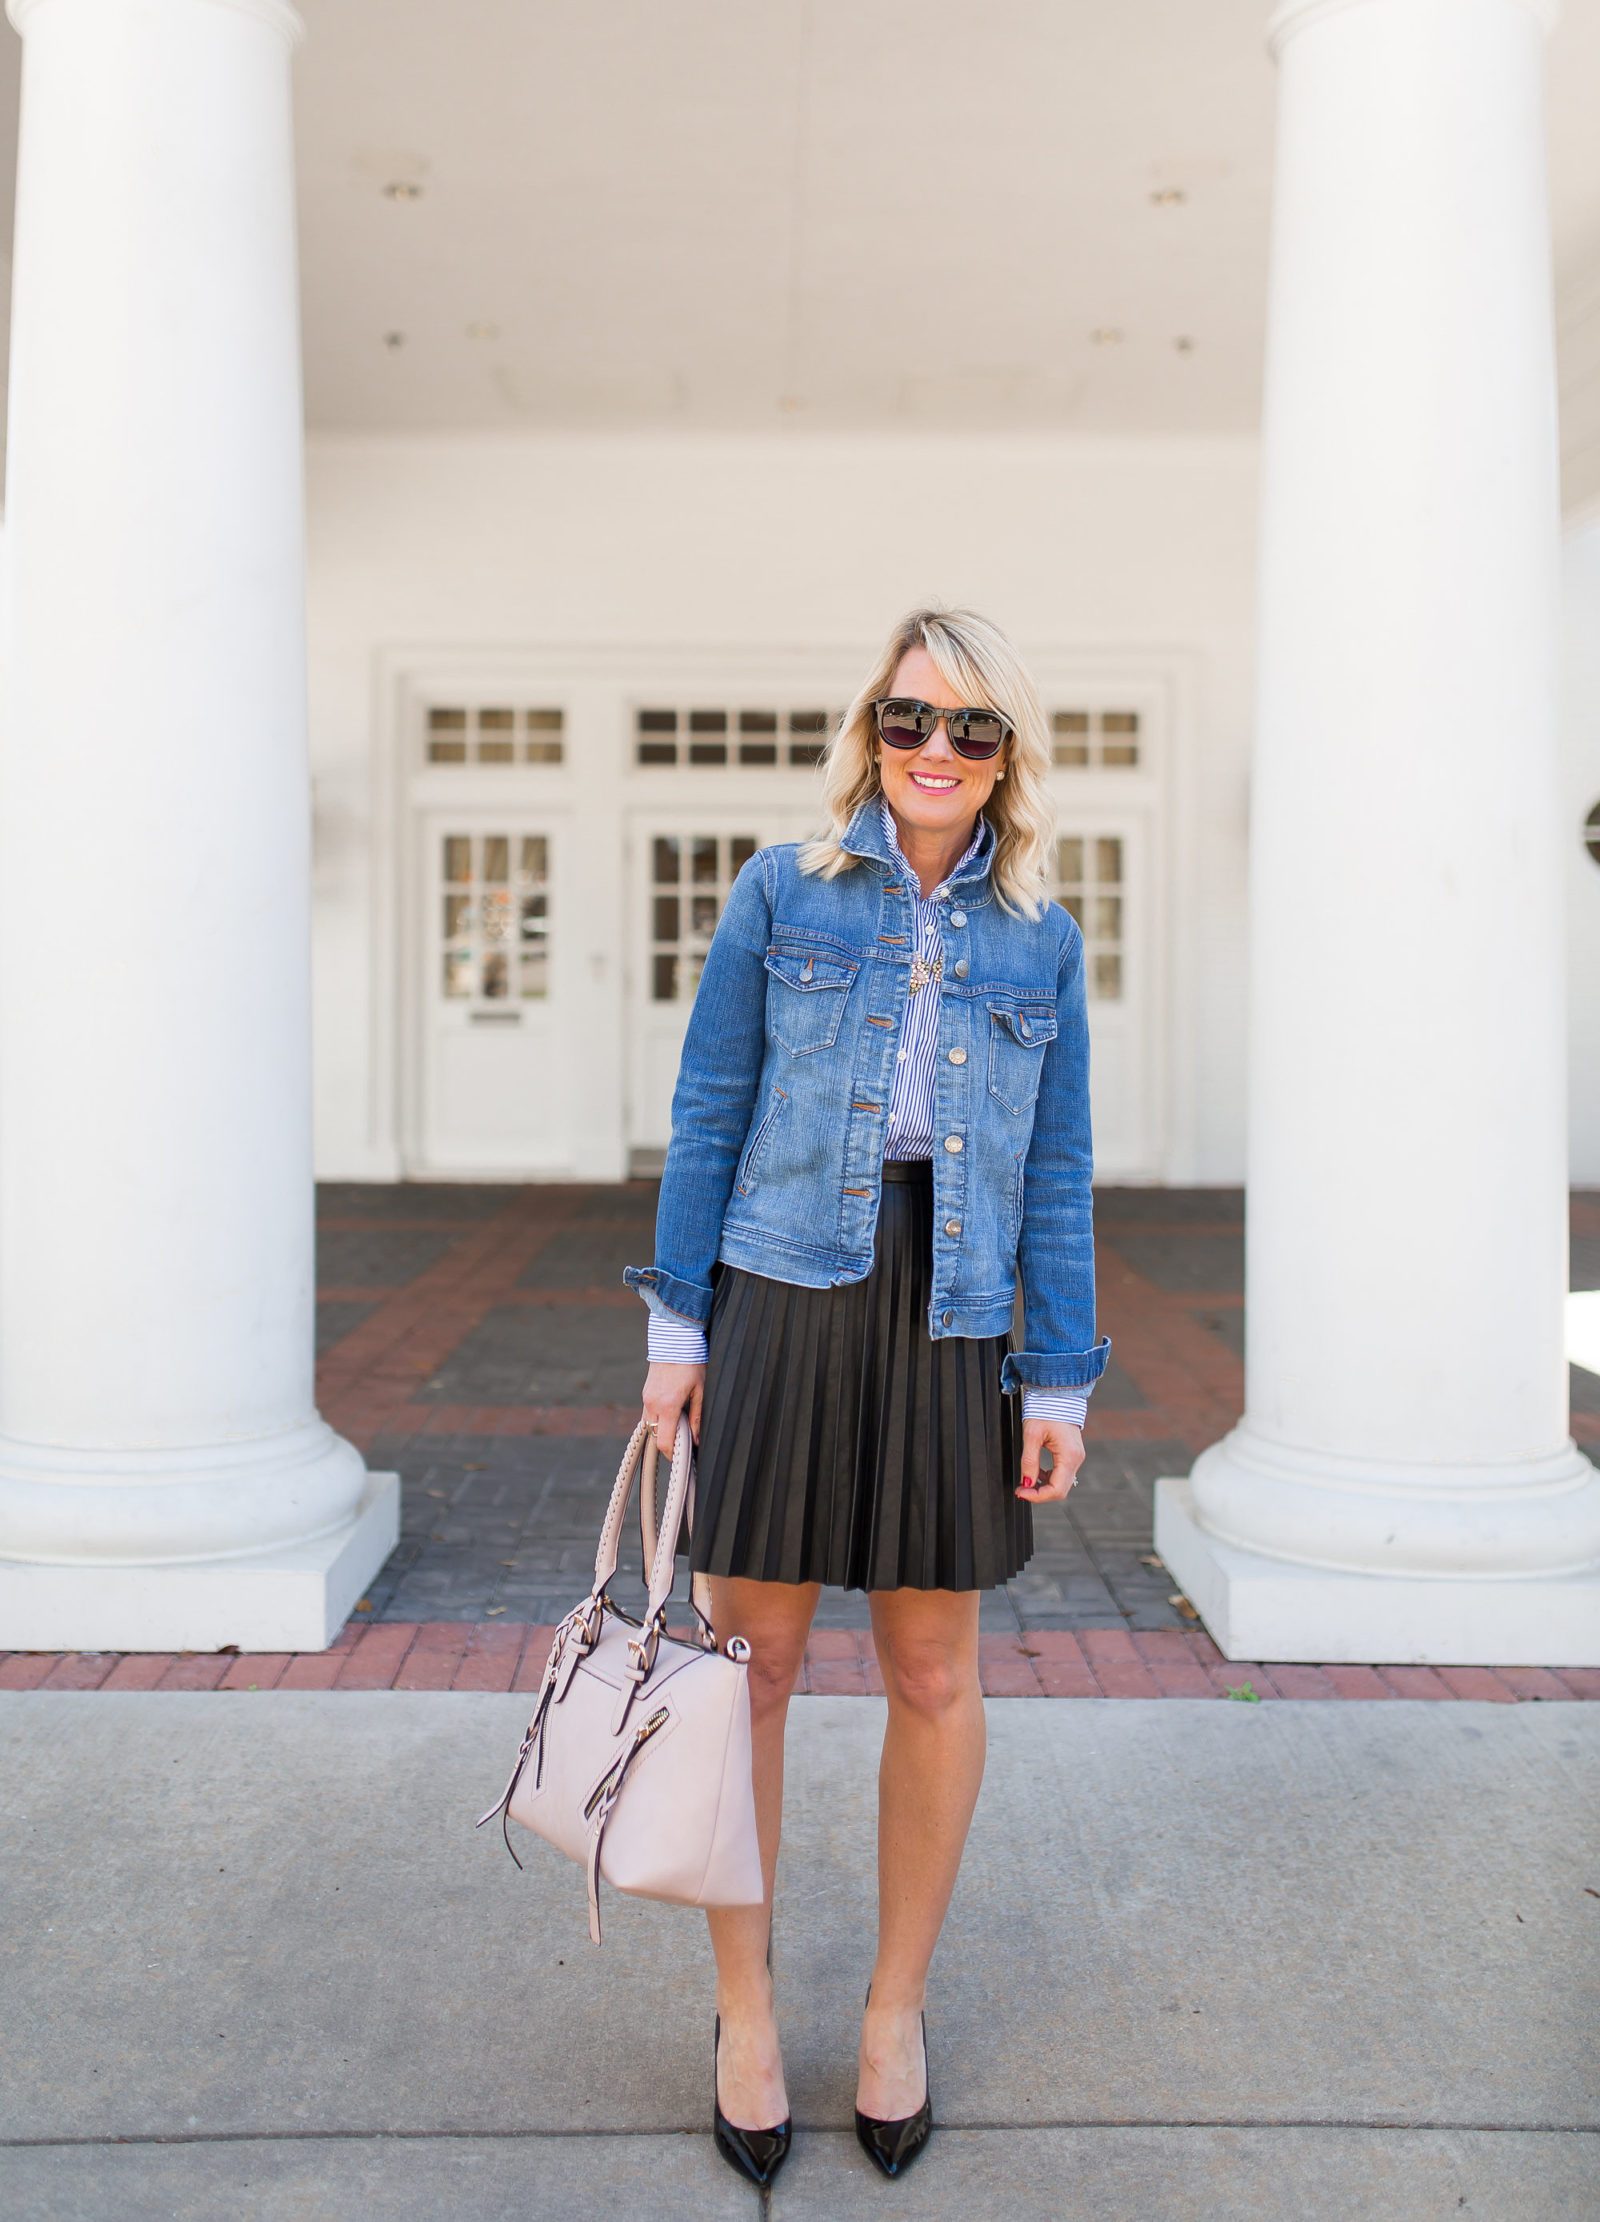 black pleated skirt outfit at arlington hall dallas